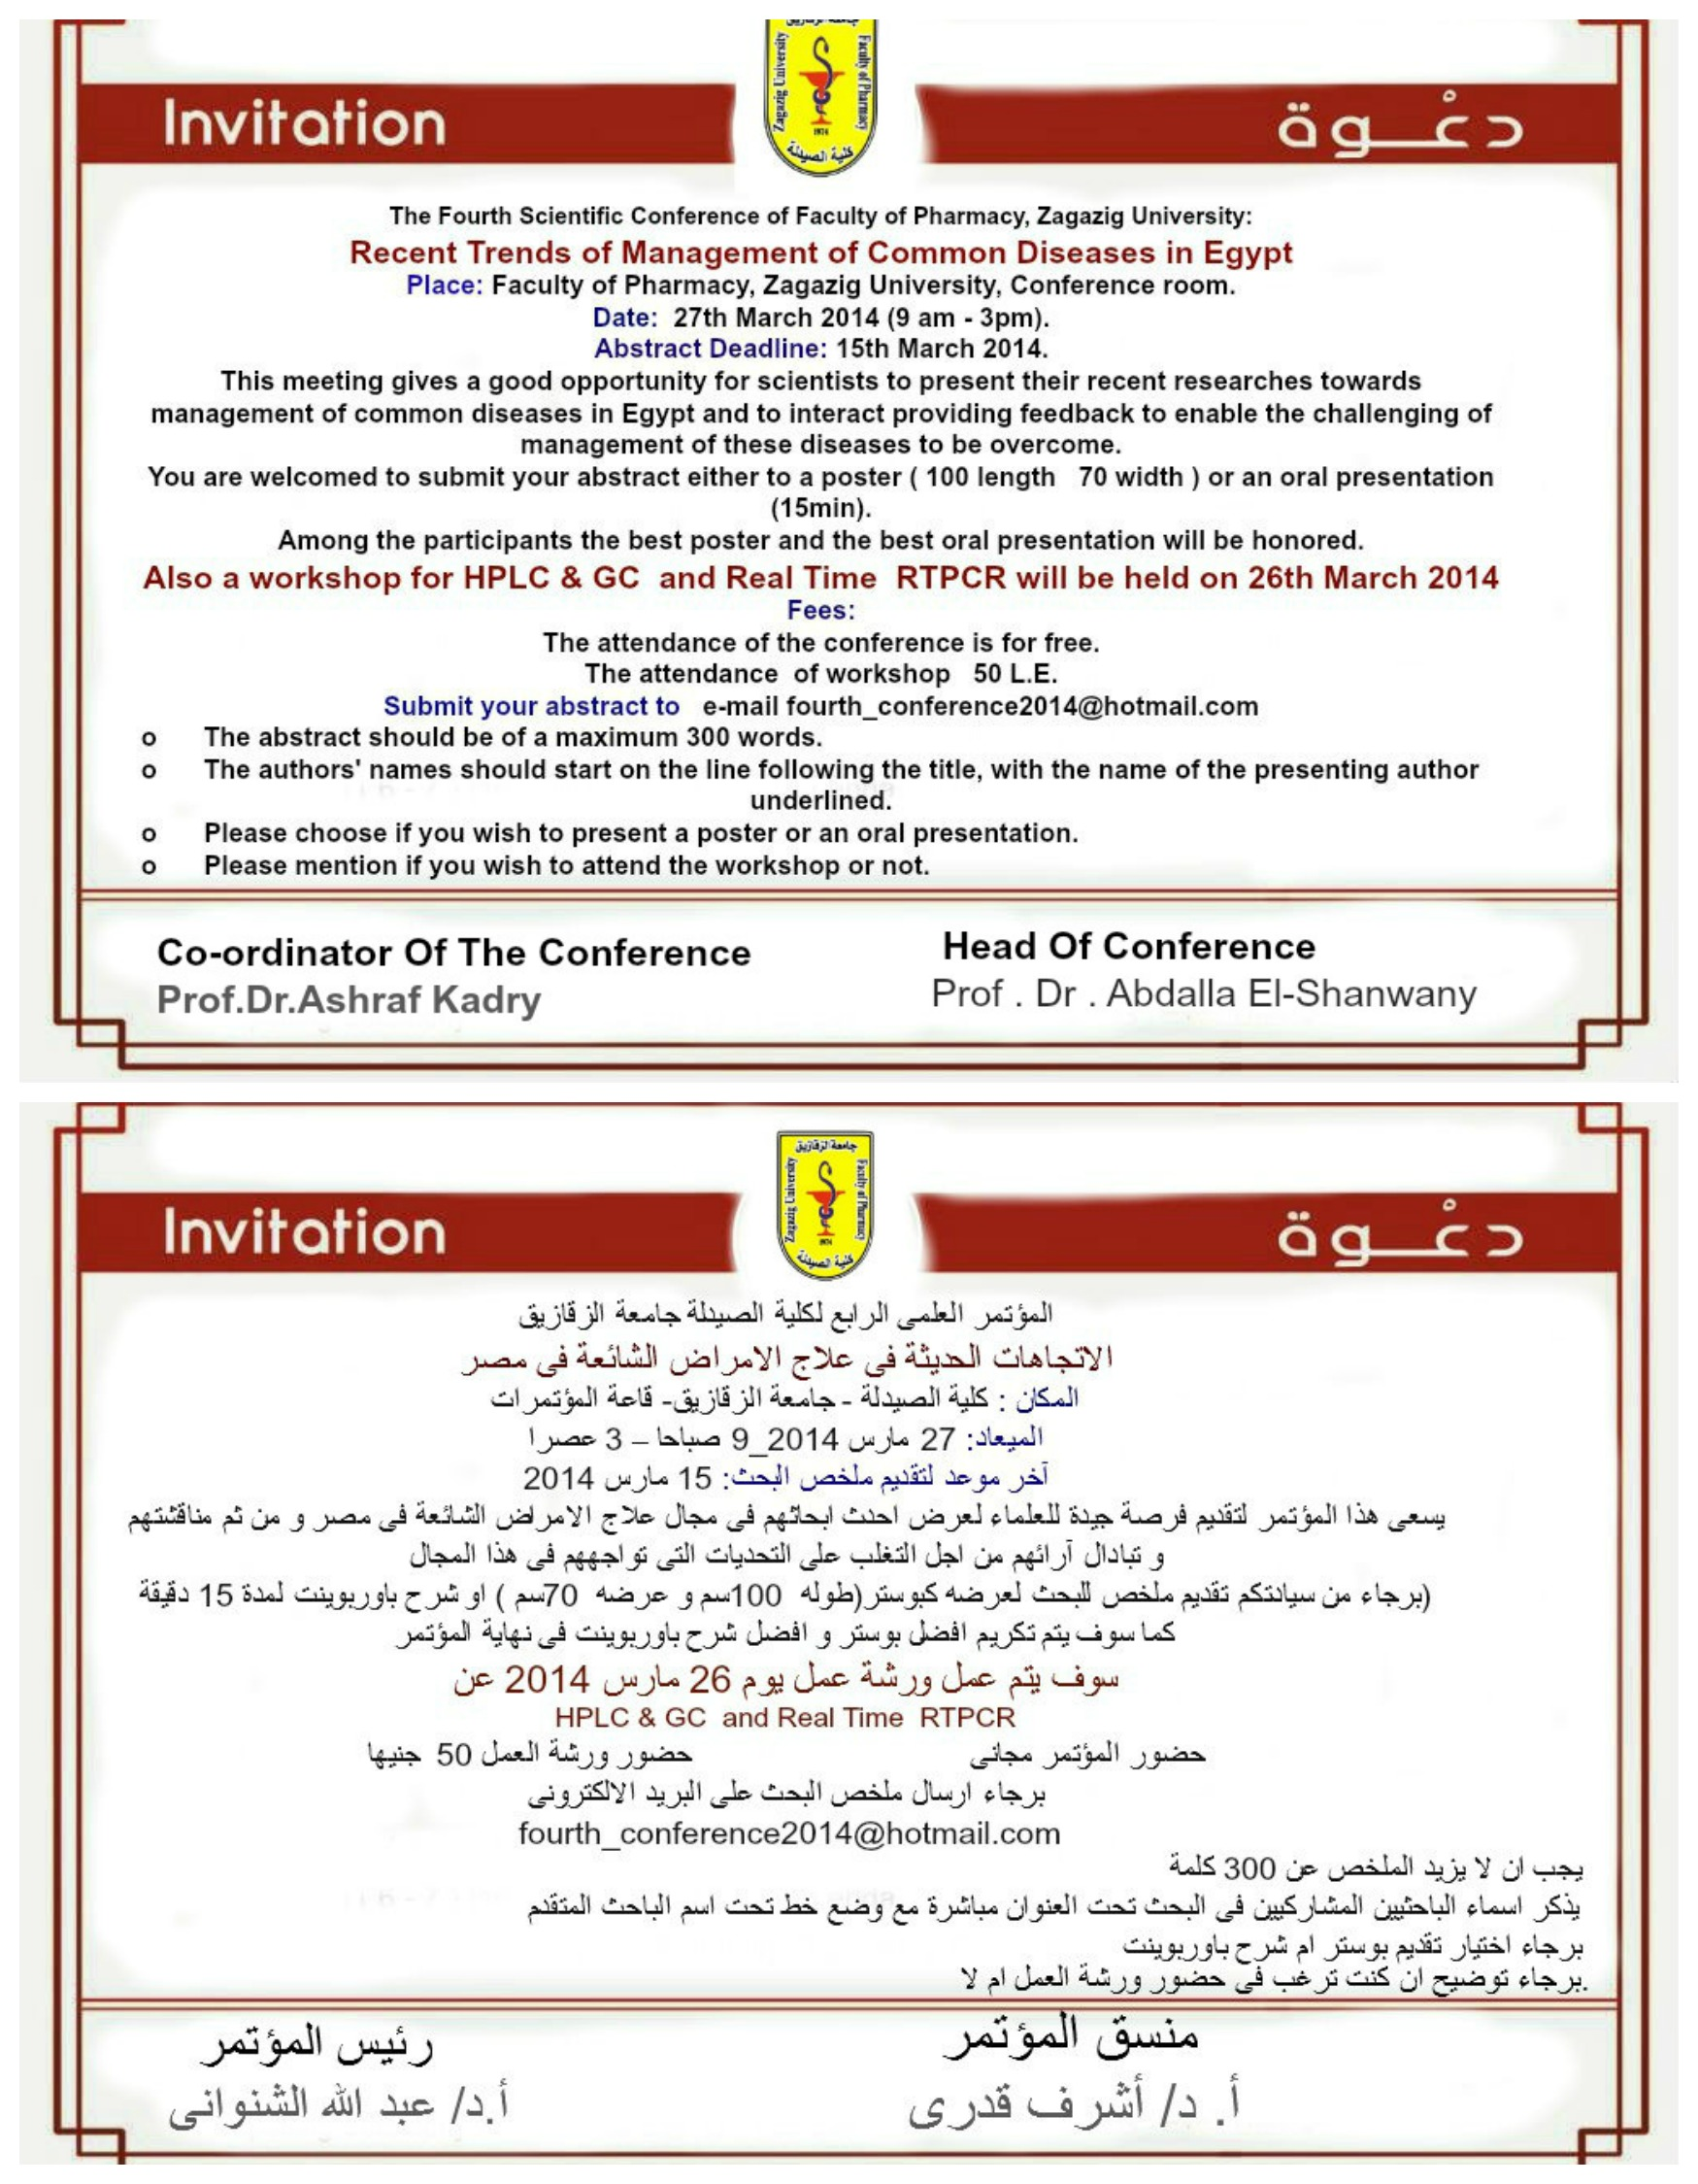 The Fourth Scientific Conference of Faculty of Pharmacy, Zagazig University: